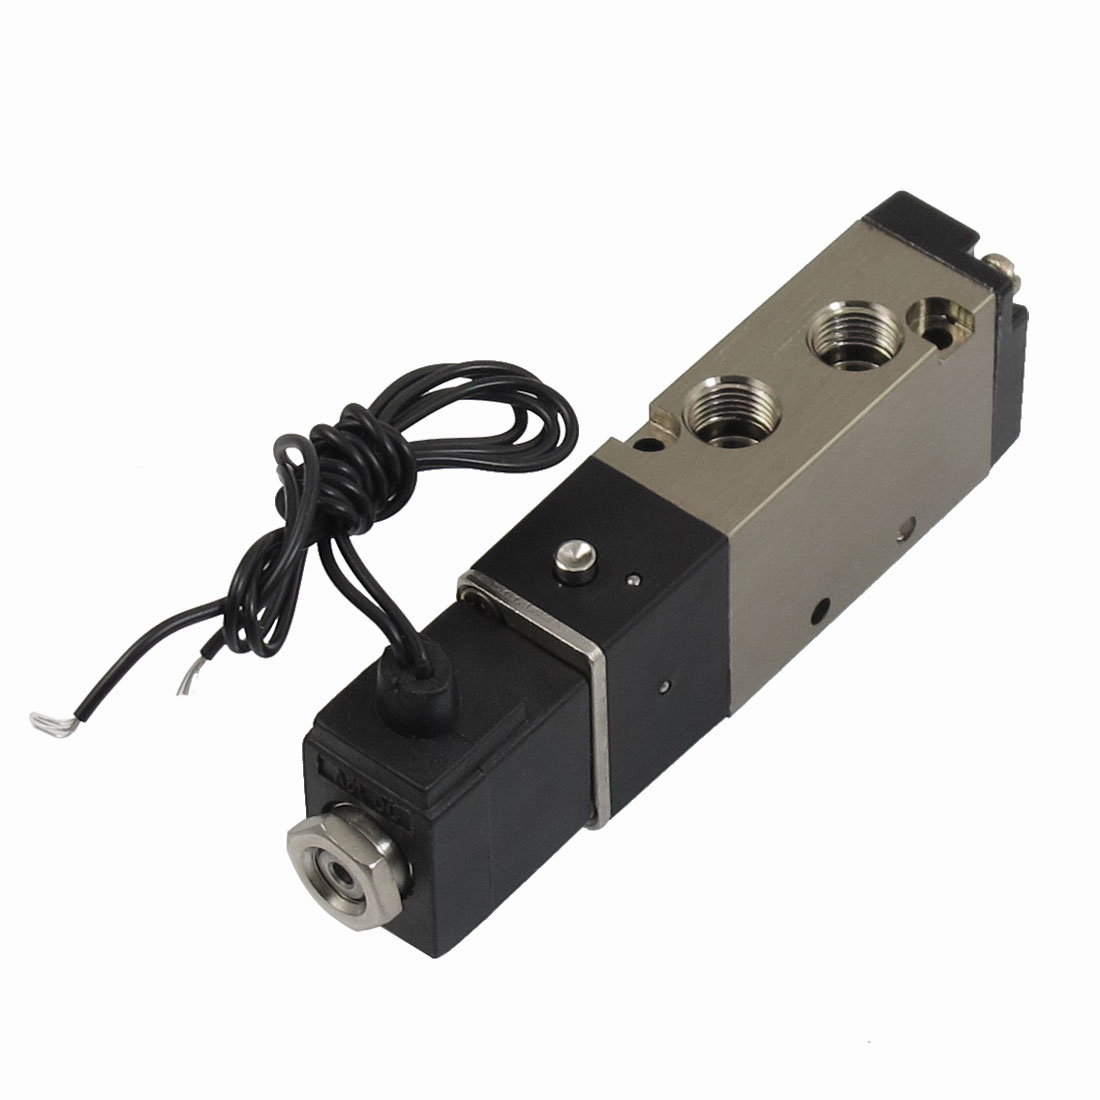 "DC 12V 2 Position 5 Way G1/8"" Outlet Pneumatic Electromagnetic Solenoid Valve w Cable"